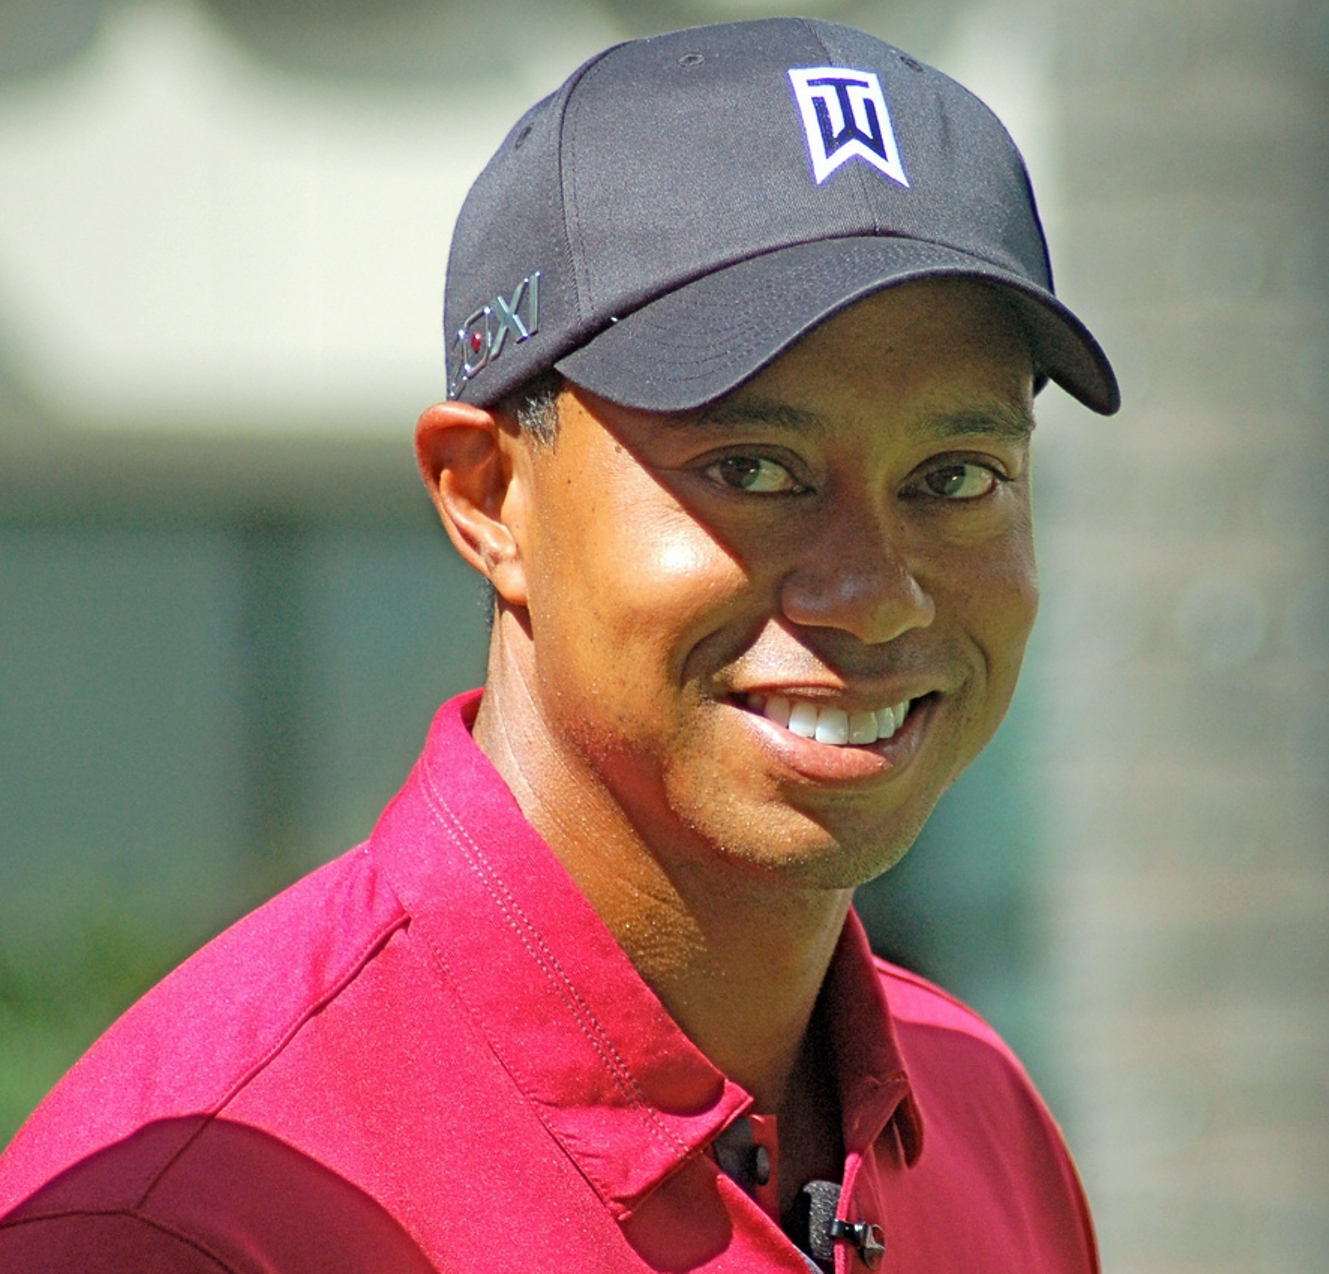 Tiger Woods completed 12 holes in practice on Saturday and a full round on Sunday.